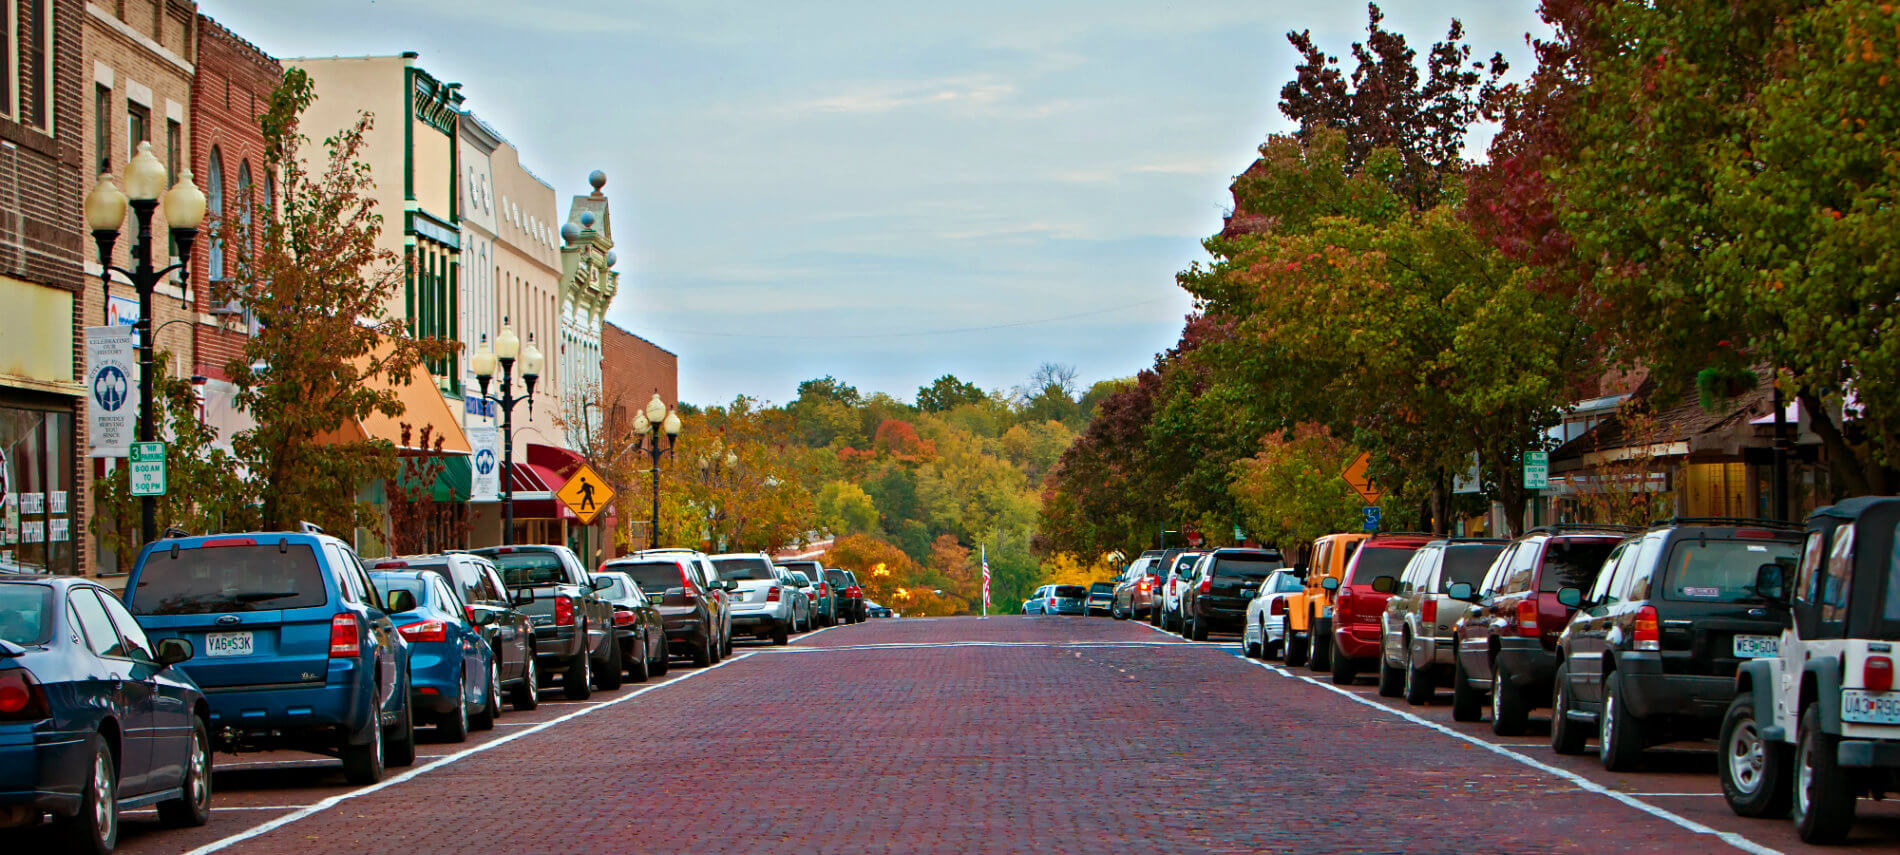 Red brick city street lined with parked cars, old brick storefronts and trees in rich autumn hues